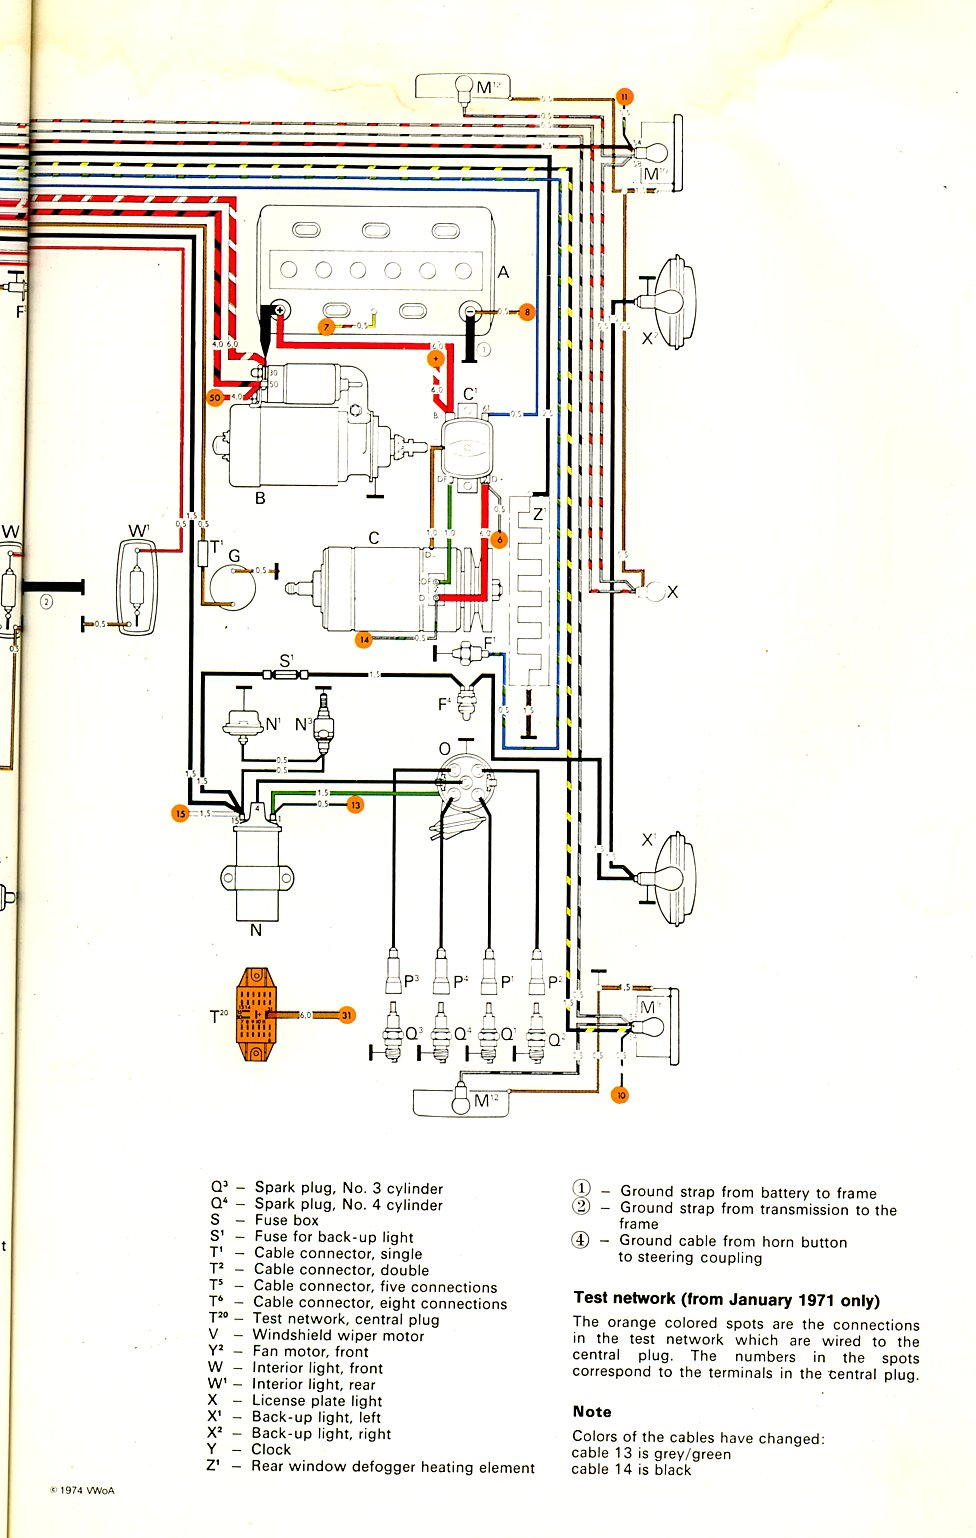 baybus_71b 1971 bus wiring diagram thegoldenbug com Volkswagen Type 2 Wiring Harness at alyssarenee.co